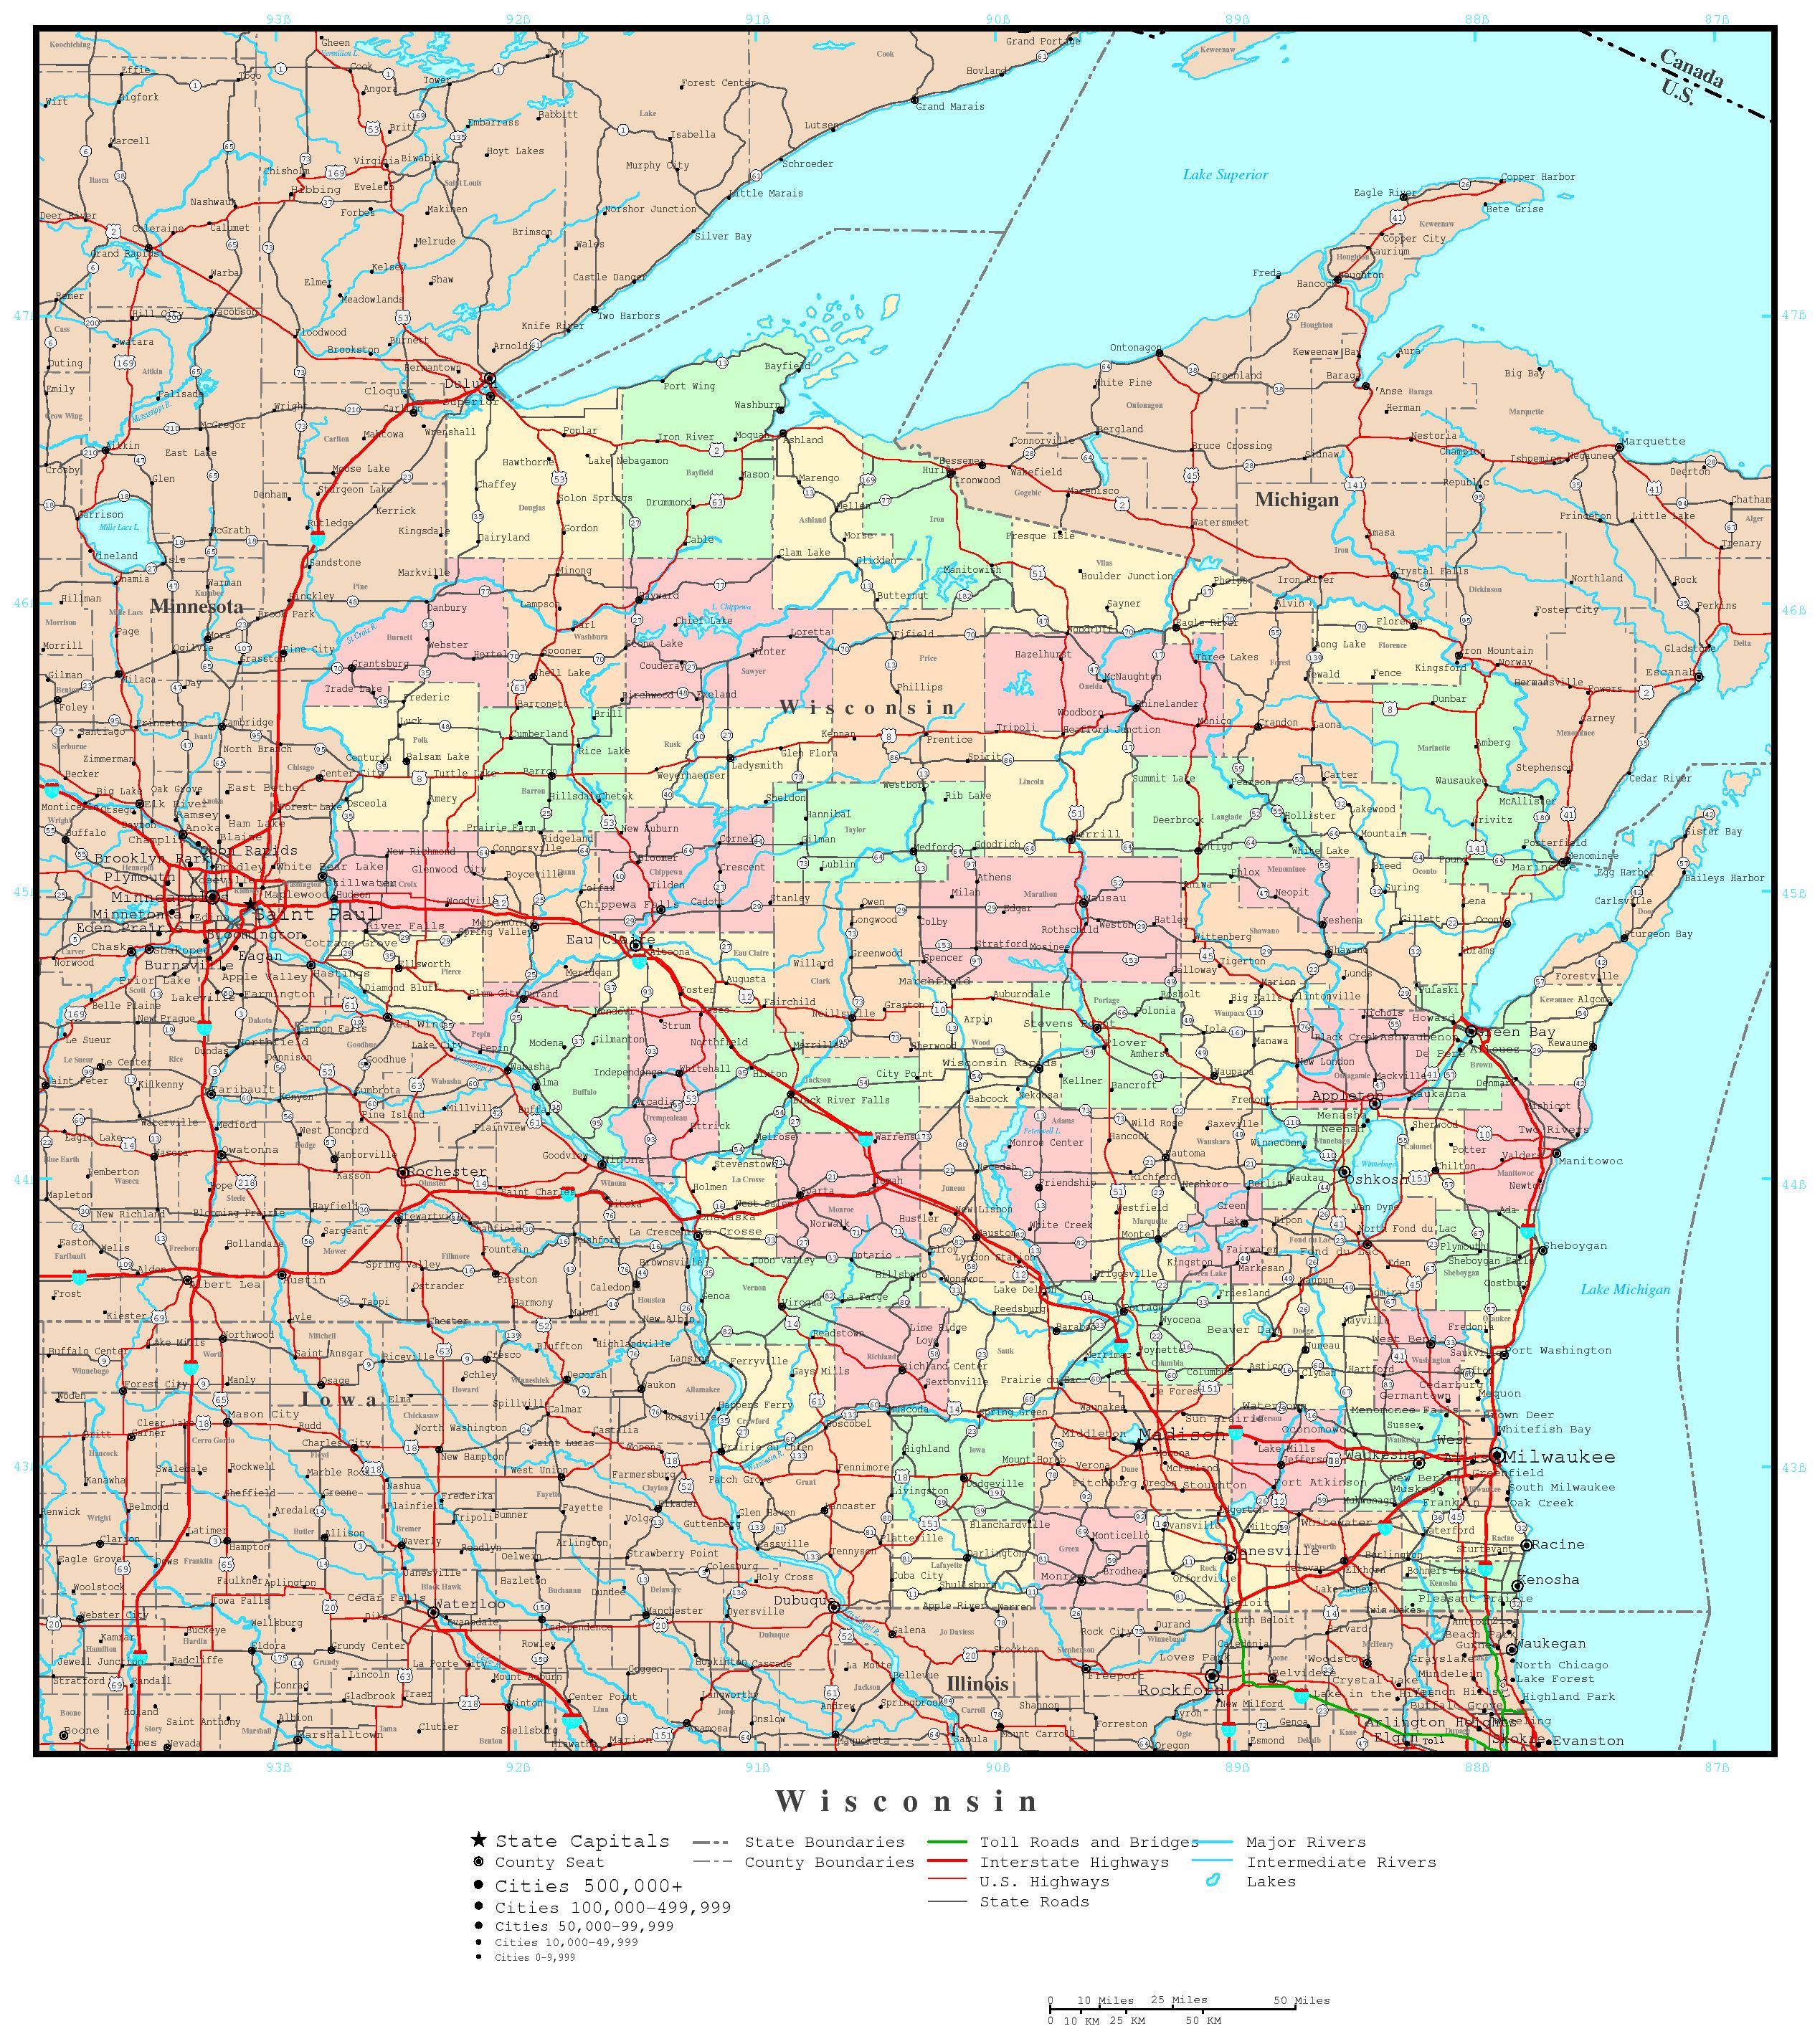 Wisconsin Political Map - Wisconsin on a us map